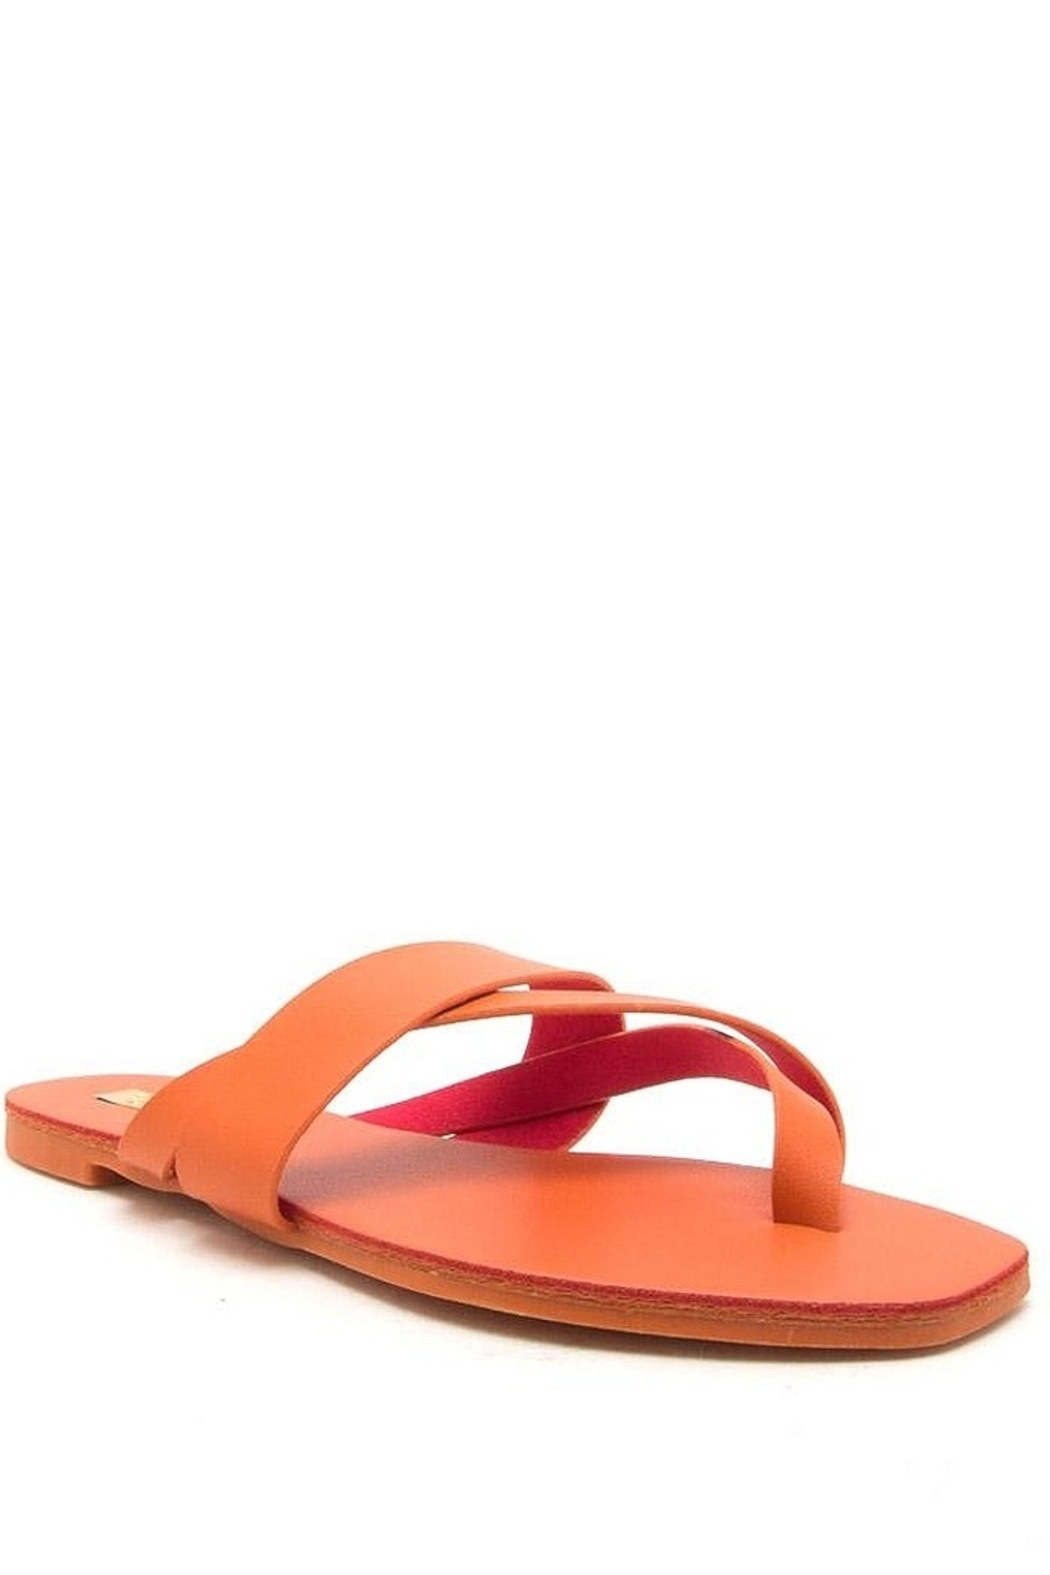 Qupid Thong Sandals - Front Cropped Image